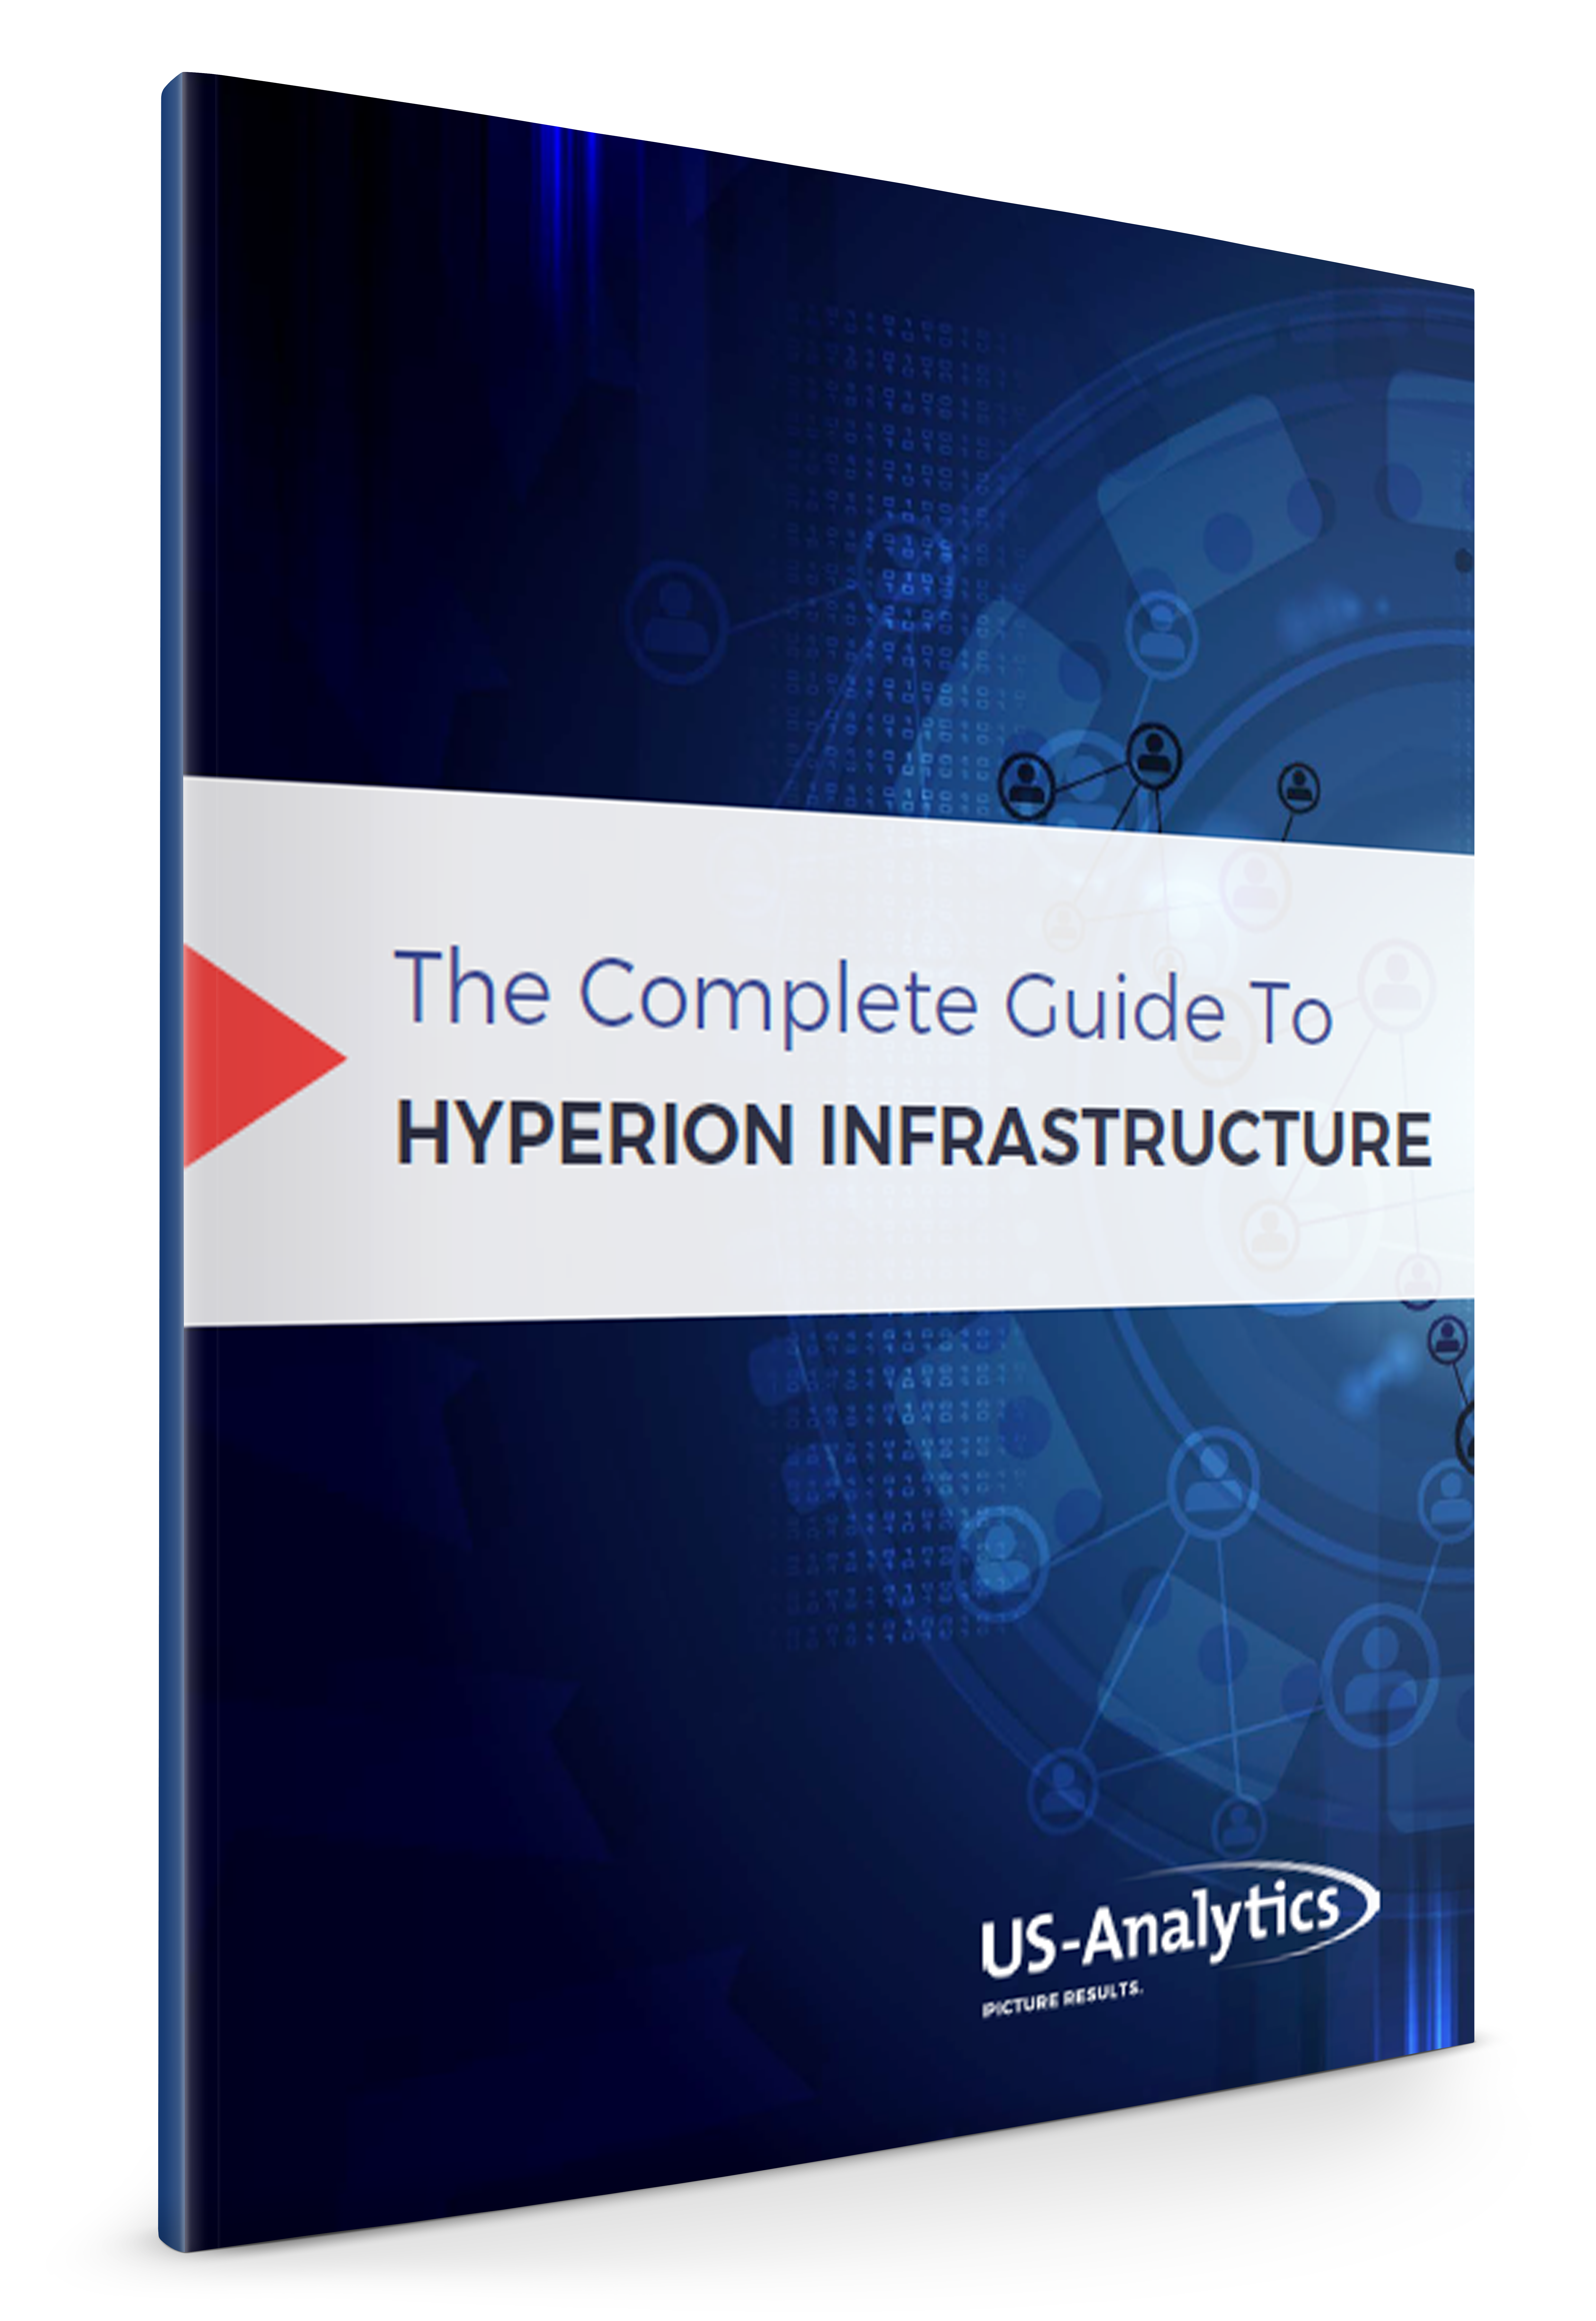 the complete guide to hyperion infrastructure_landing page.png